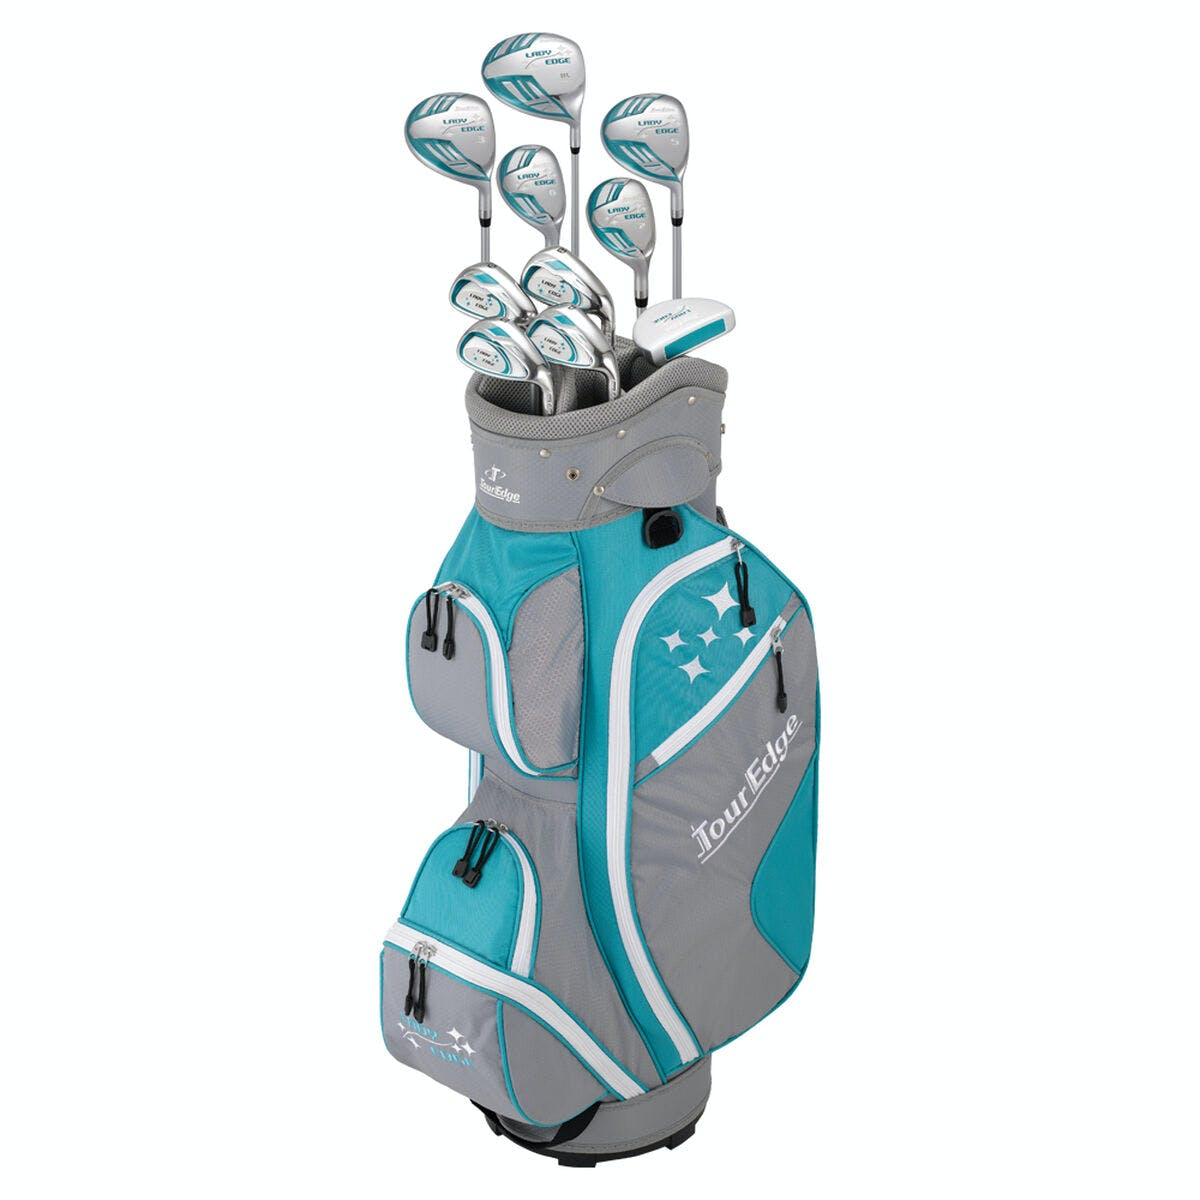 Tour Edge Lady Edge 2020 Full Box Set with Stand Bag